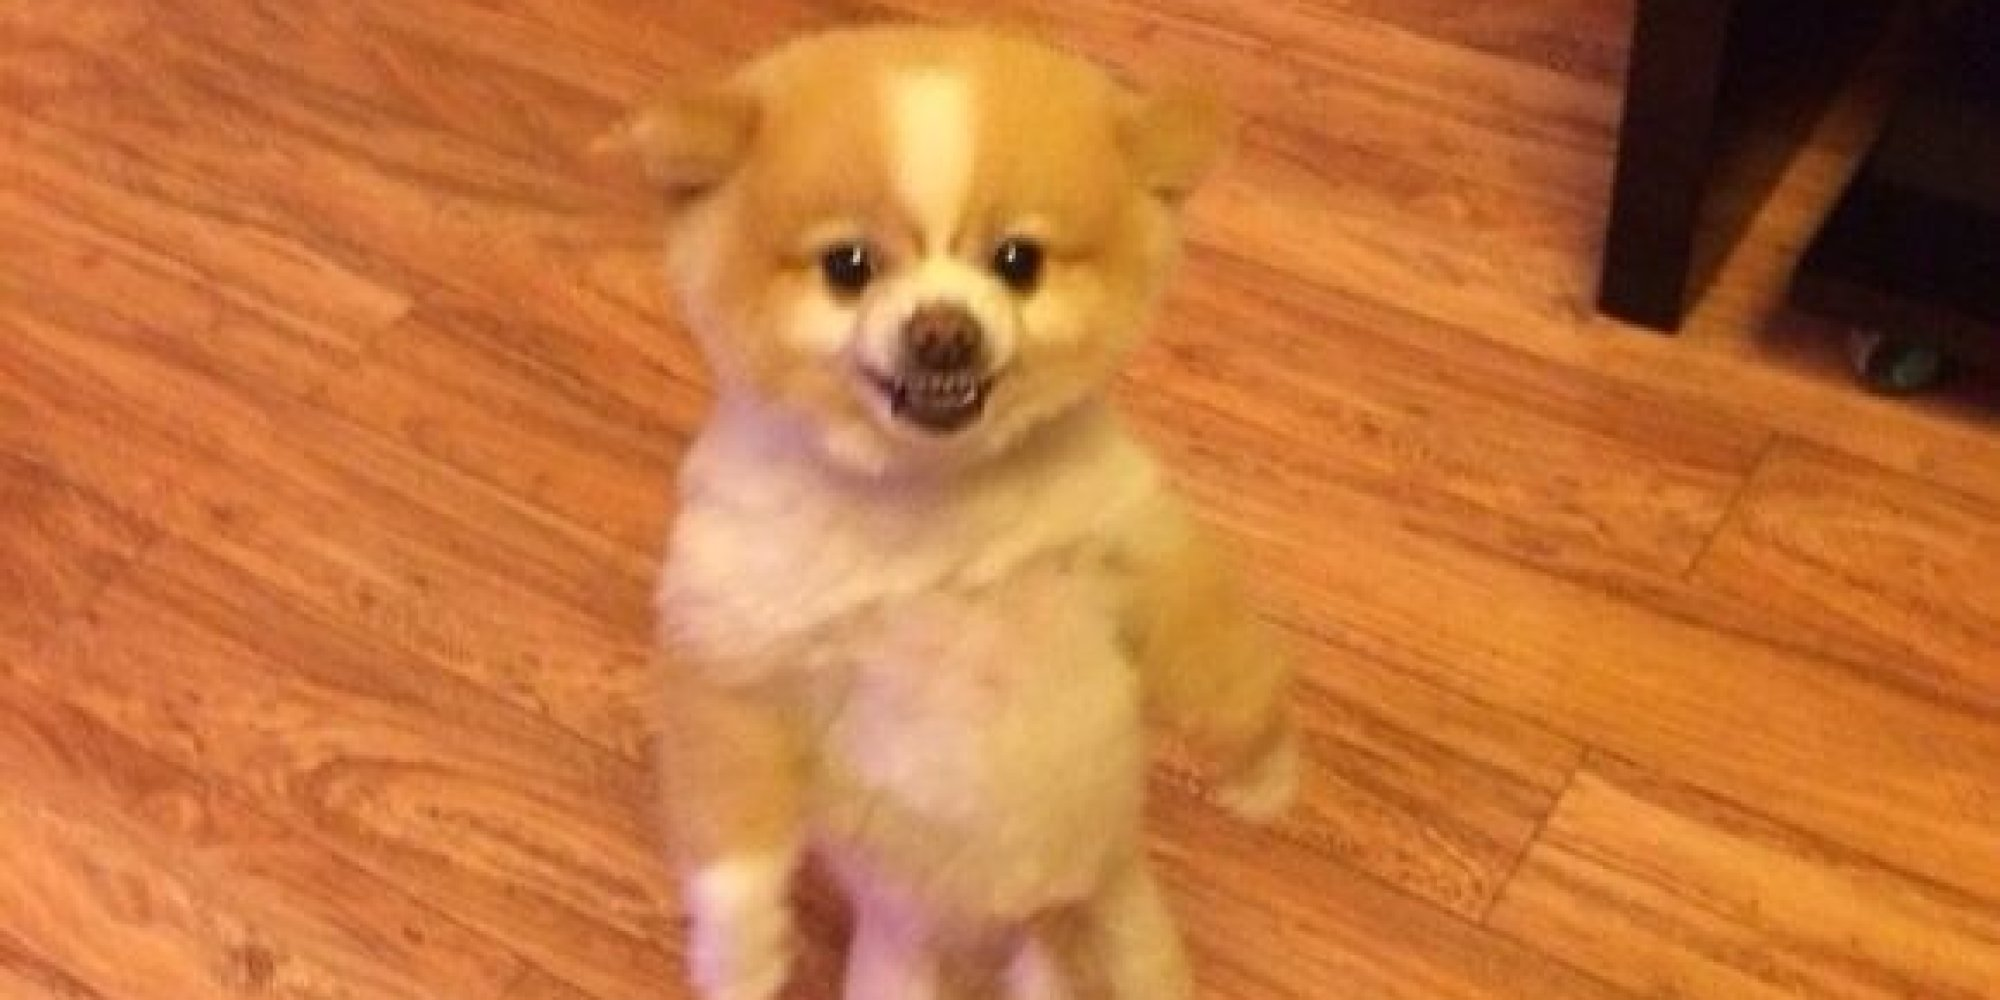 pomeranian pooch protests haircut by standing on hind legs